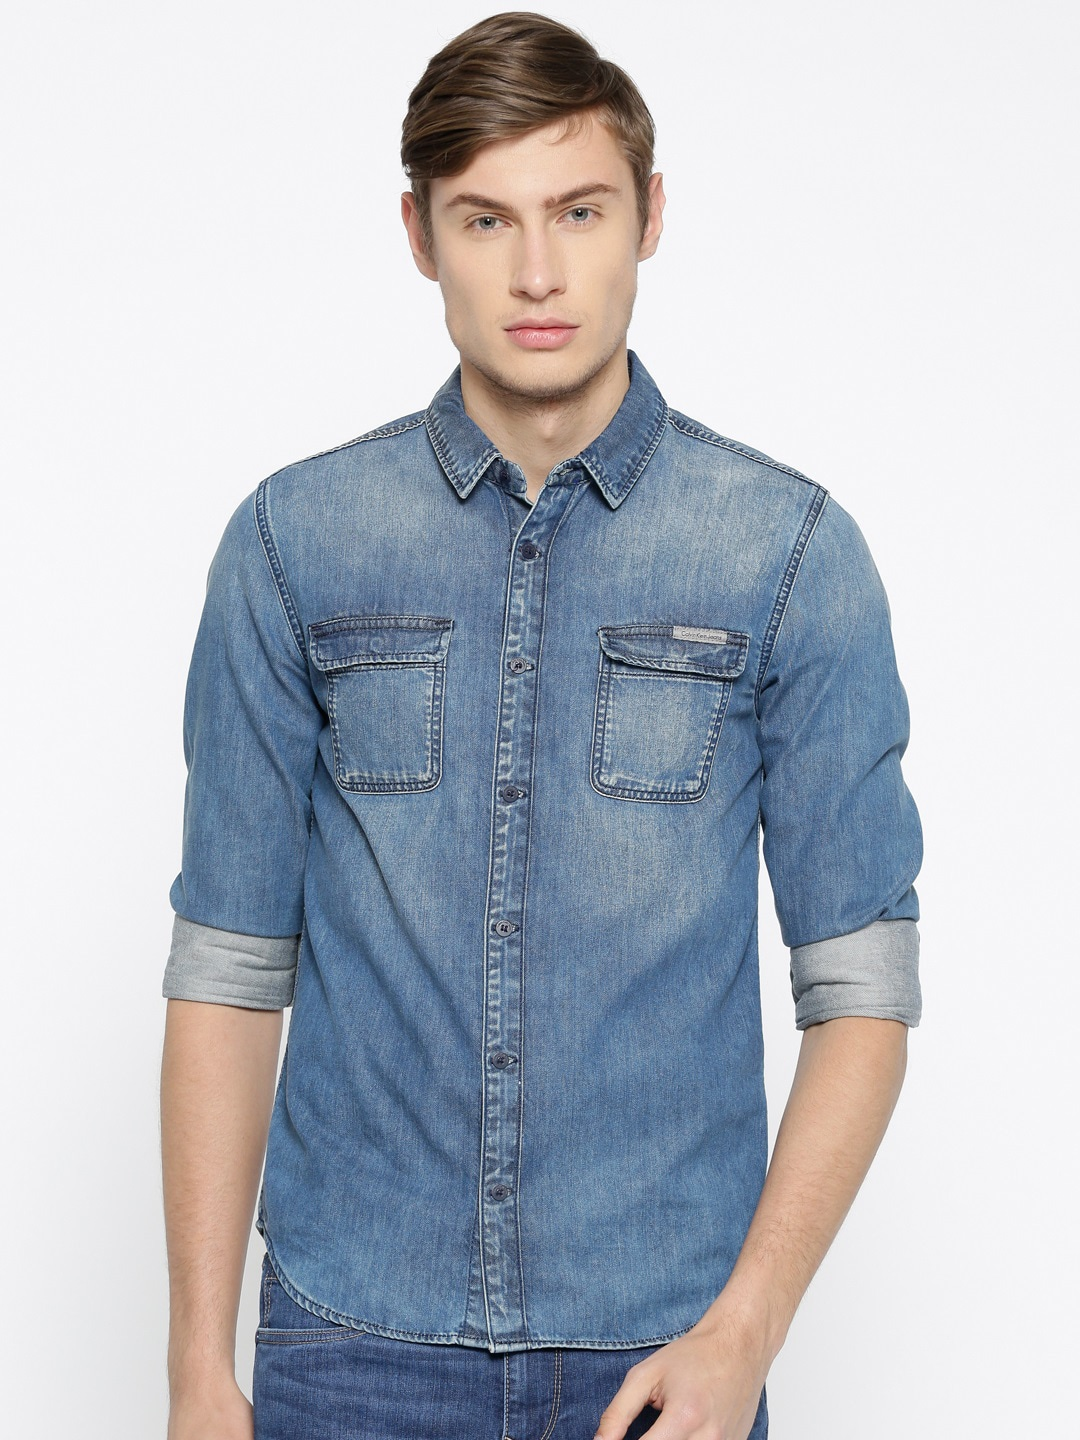 3711a62e Shirts - Buy Shirts for Men, Women & Kids Online in India | Myntra